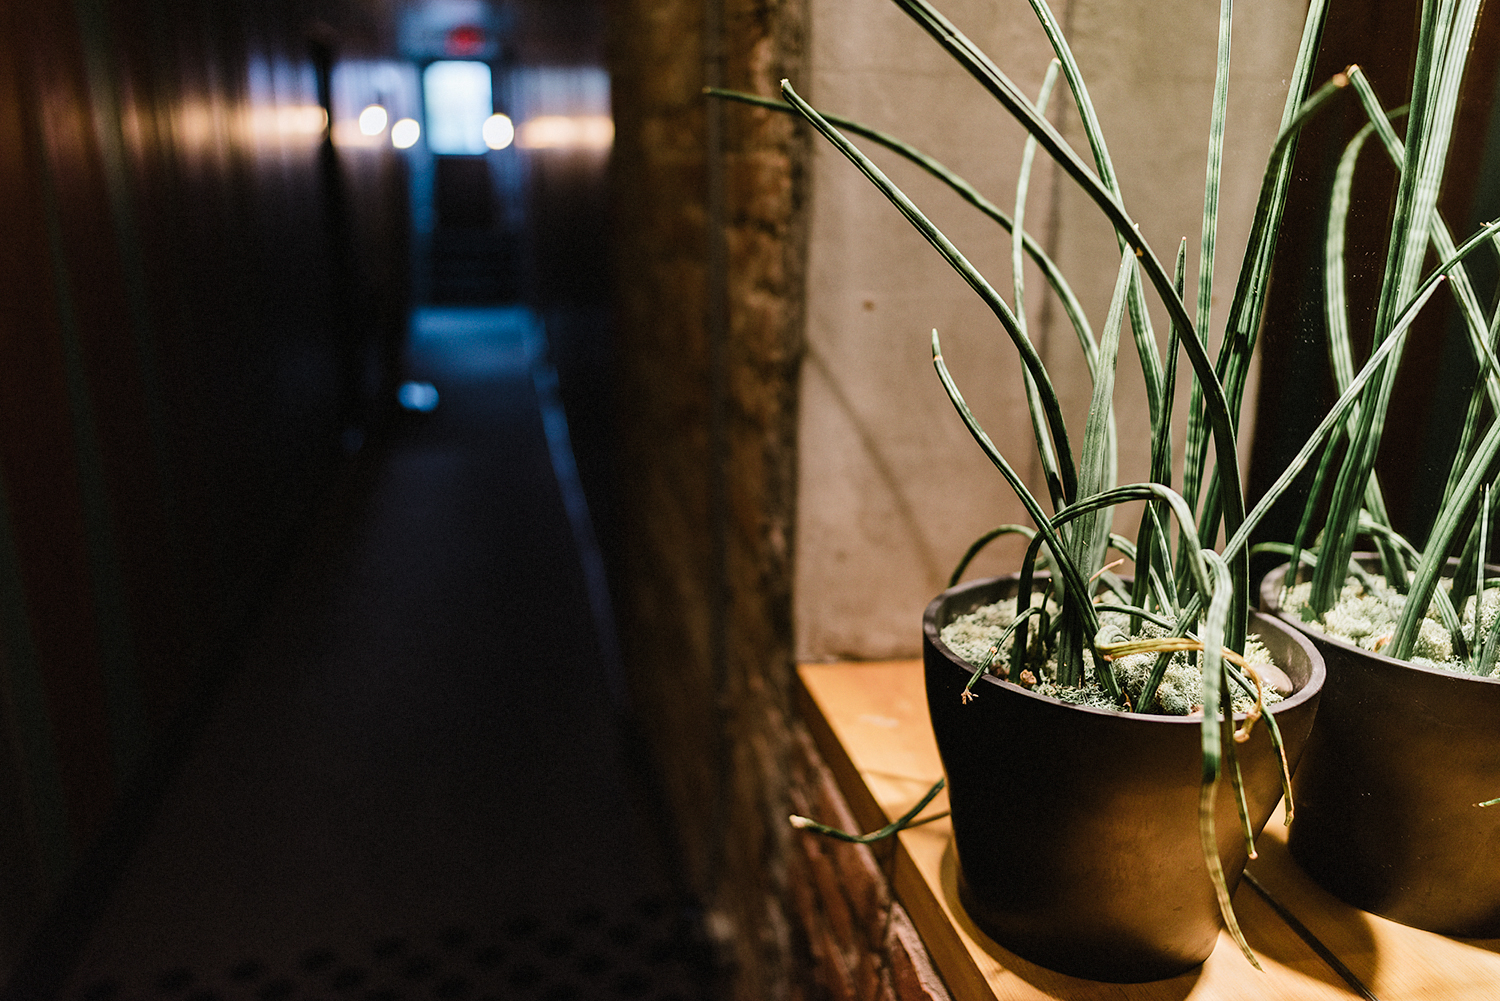 hotel-hallway-plant-details-moody-cinematic-Toronto-Elopement-at-the-Drake-Hotel-Torontos-Best-elopement-photographers-candid-documentary.jpg